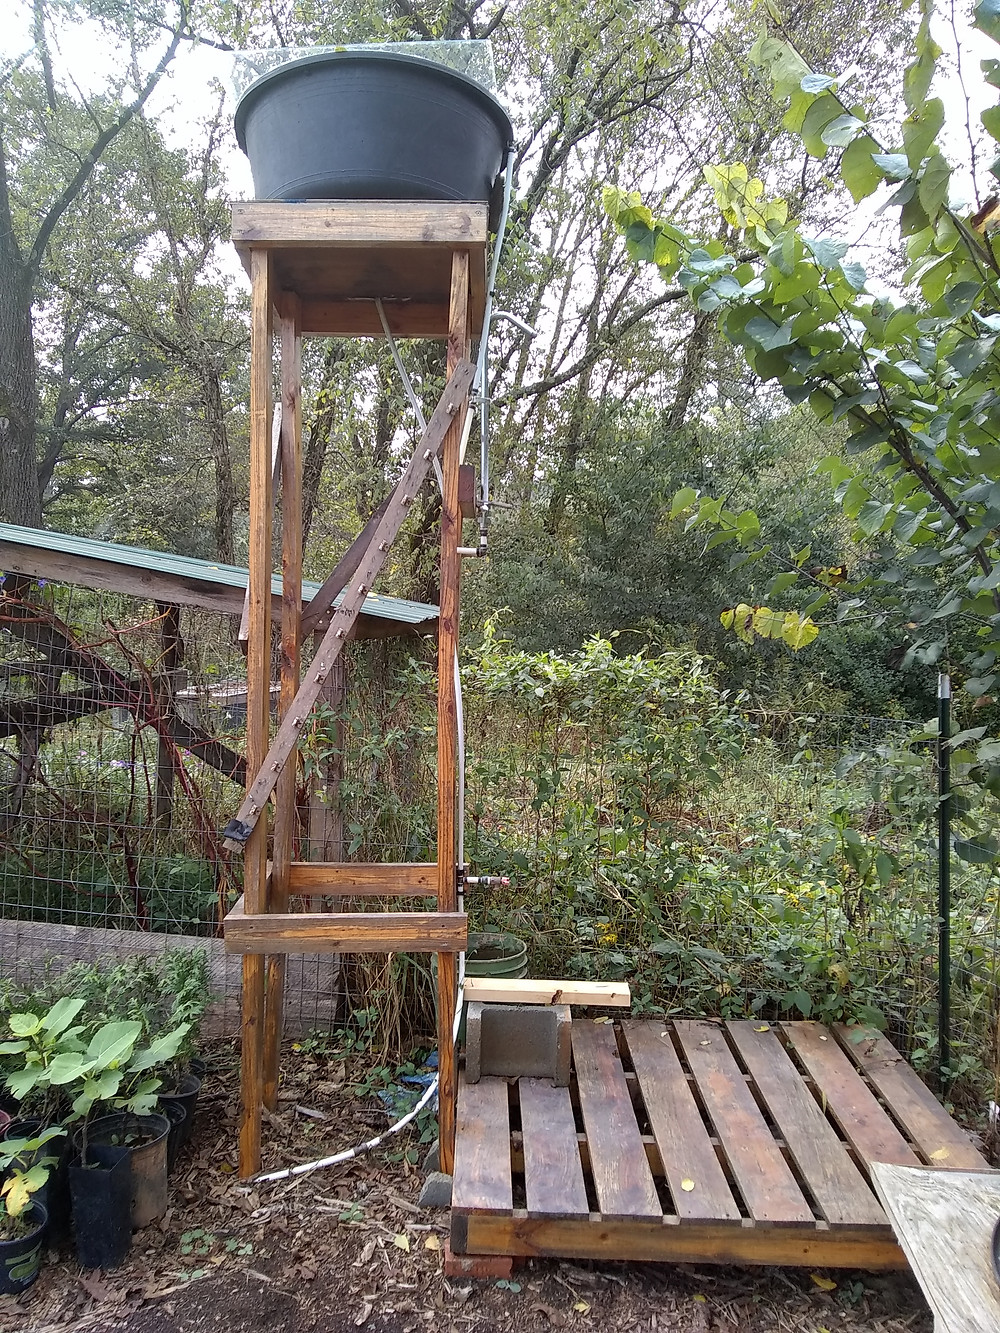 Solar-heated shower from repurposed materials